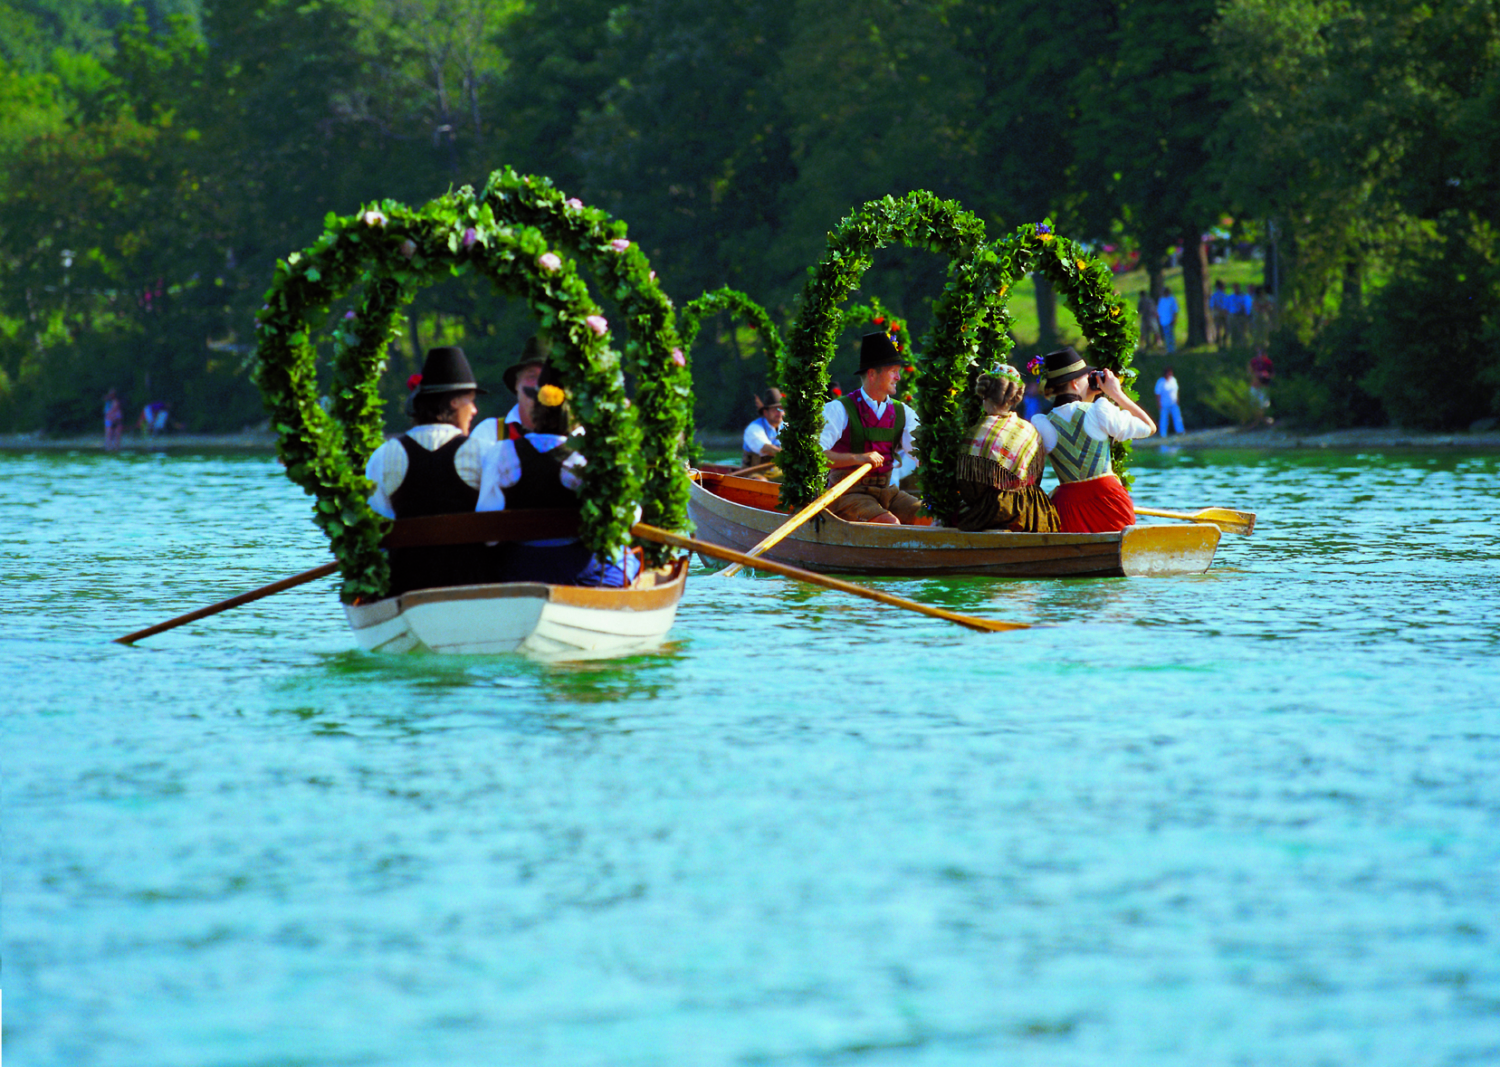 Lake Festival in Schliersee